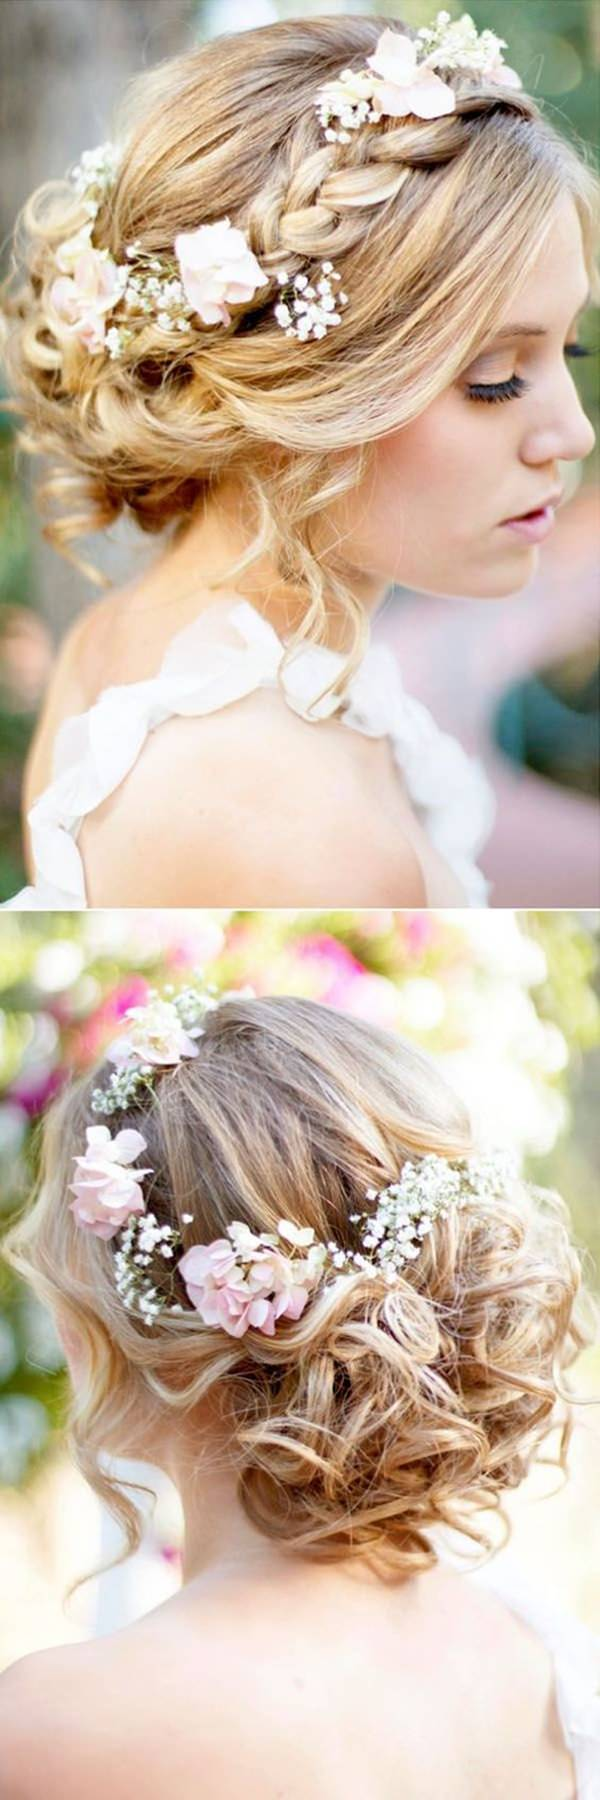 Beautiful Hairstyles For Quinceanera For Stylish Girls To Wear  |Beautiful Hairstyles For Quinceaneras